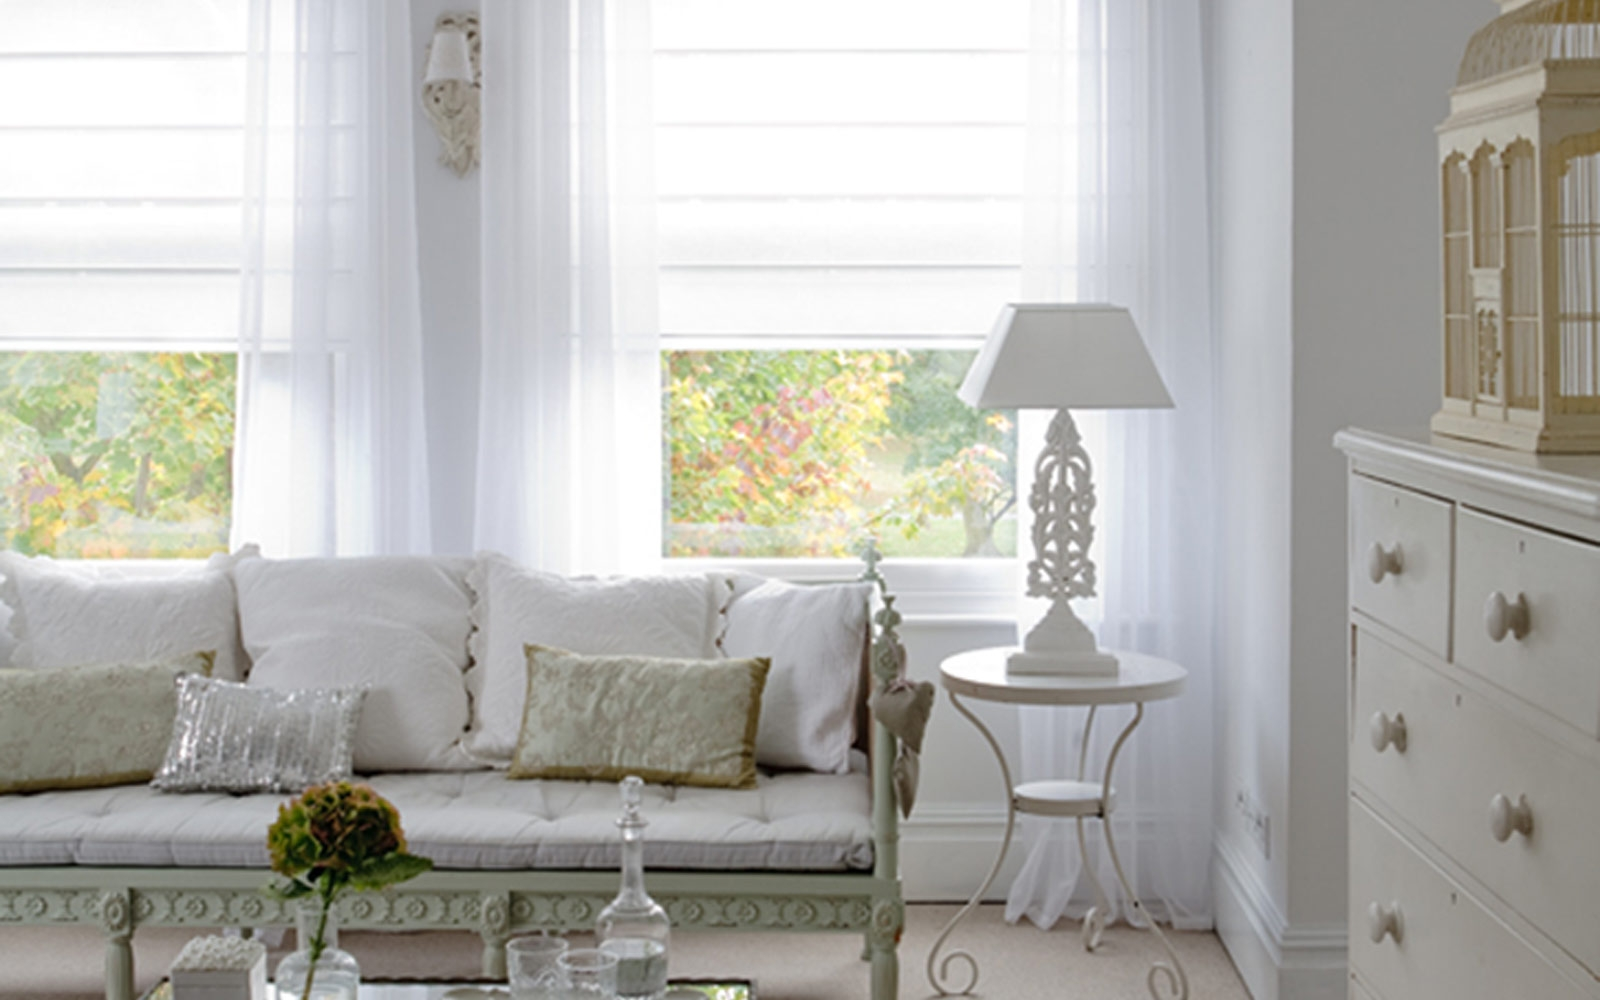 Voile Surrey Blinds Shutters Intended For Voile Roman Blinds (Image 14 of 15)